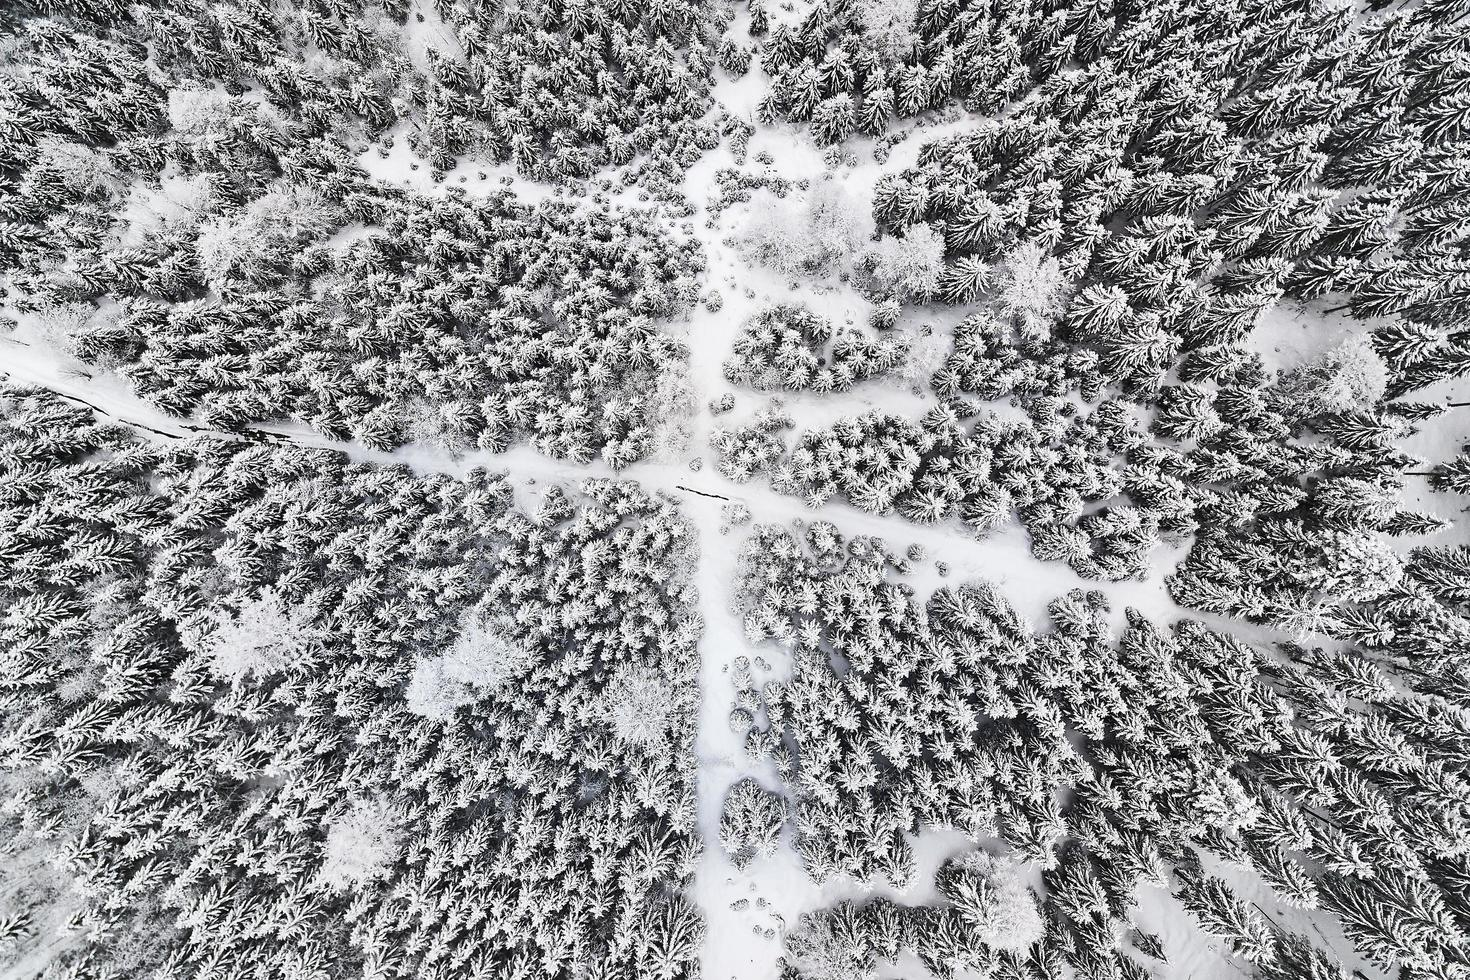 Top-down view of trees covered in snow with hiking trails photo